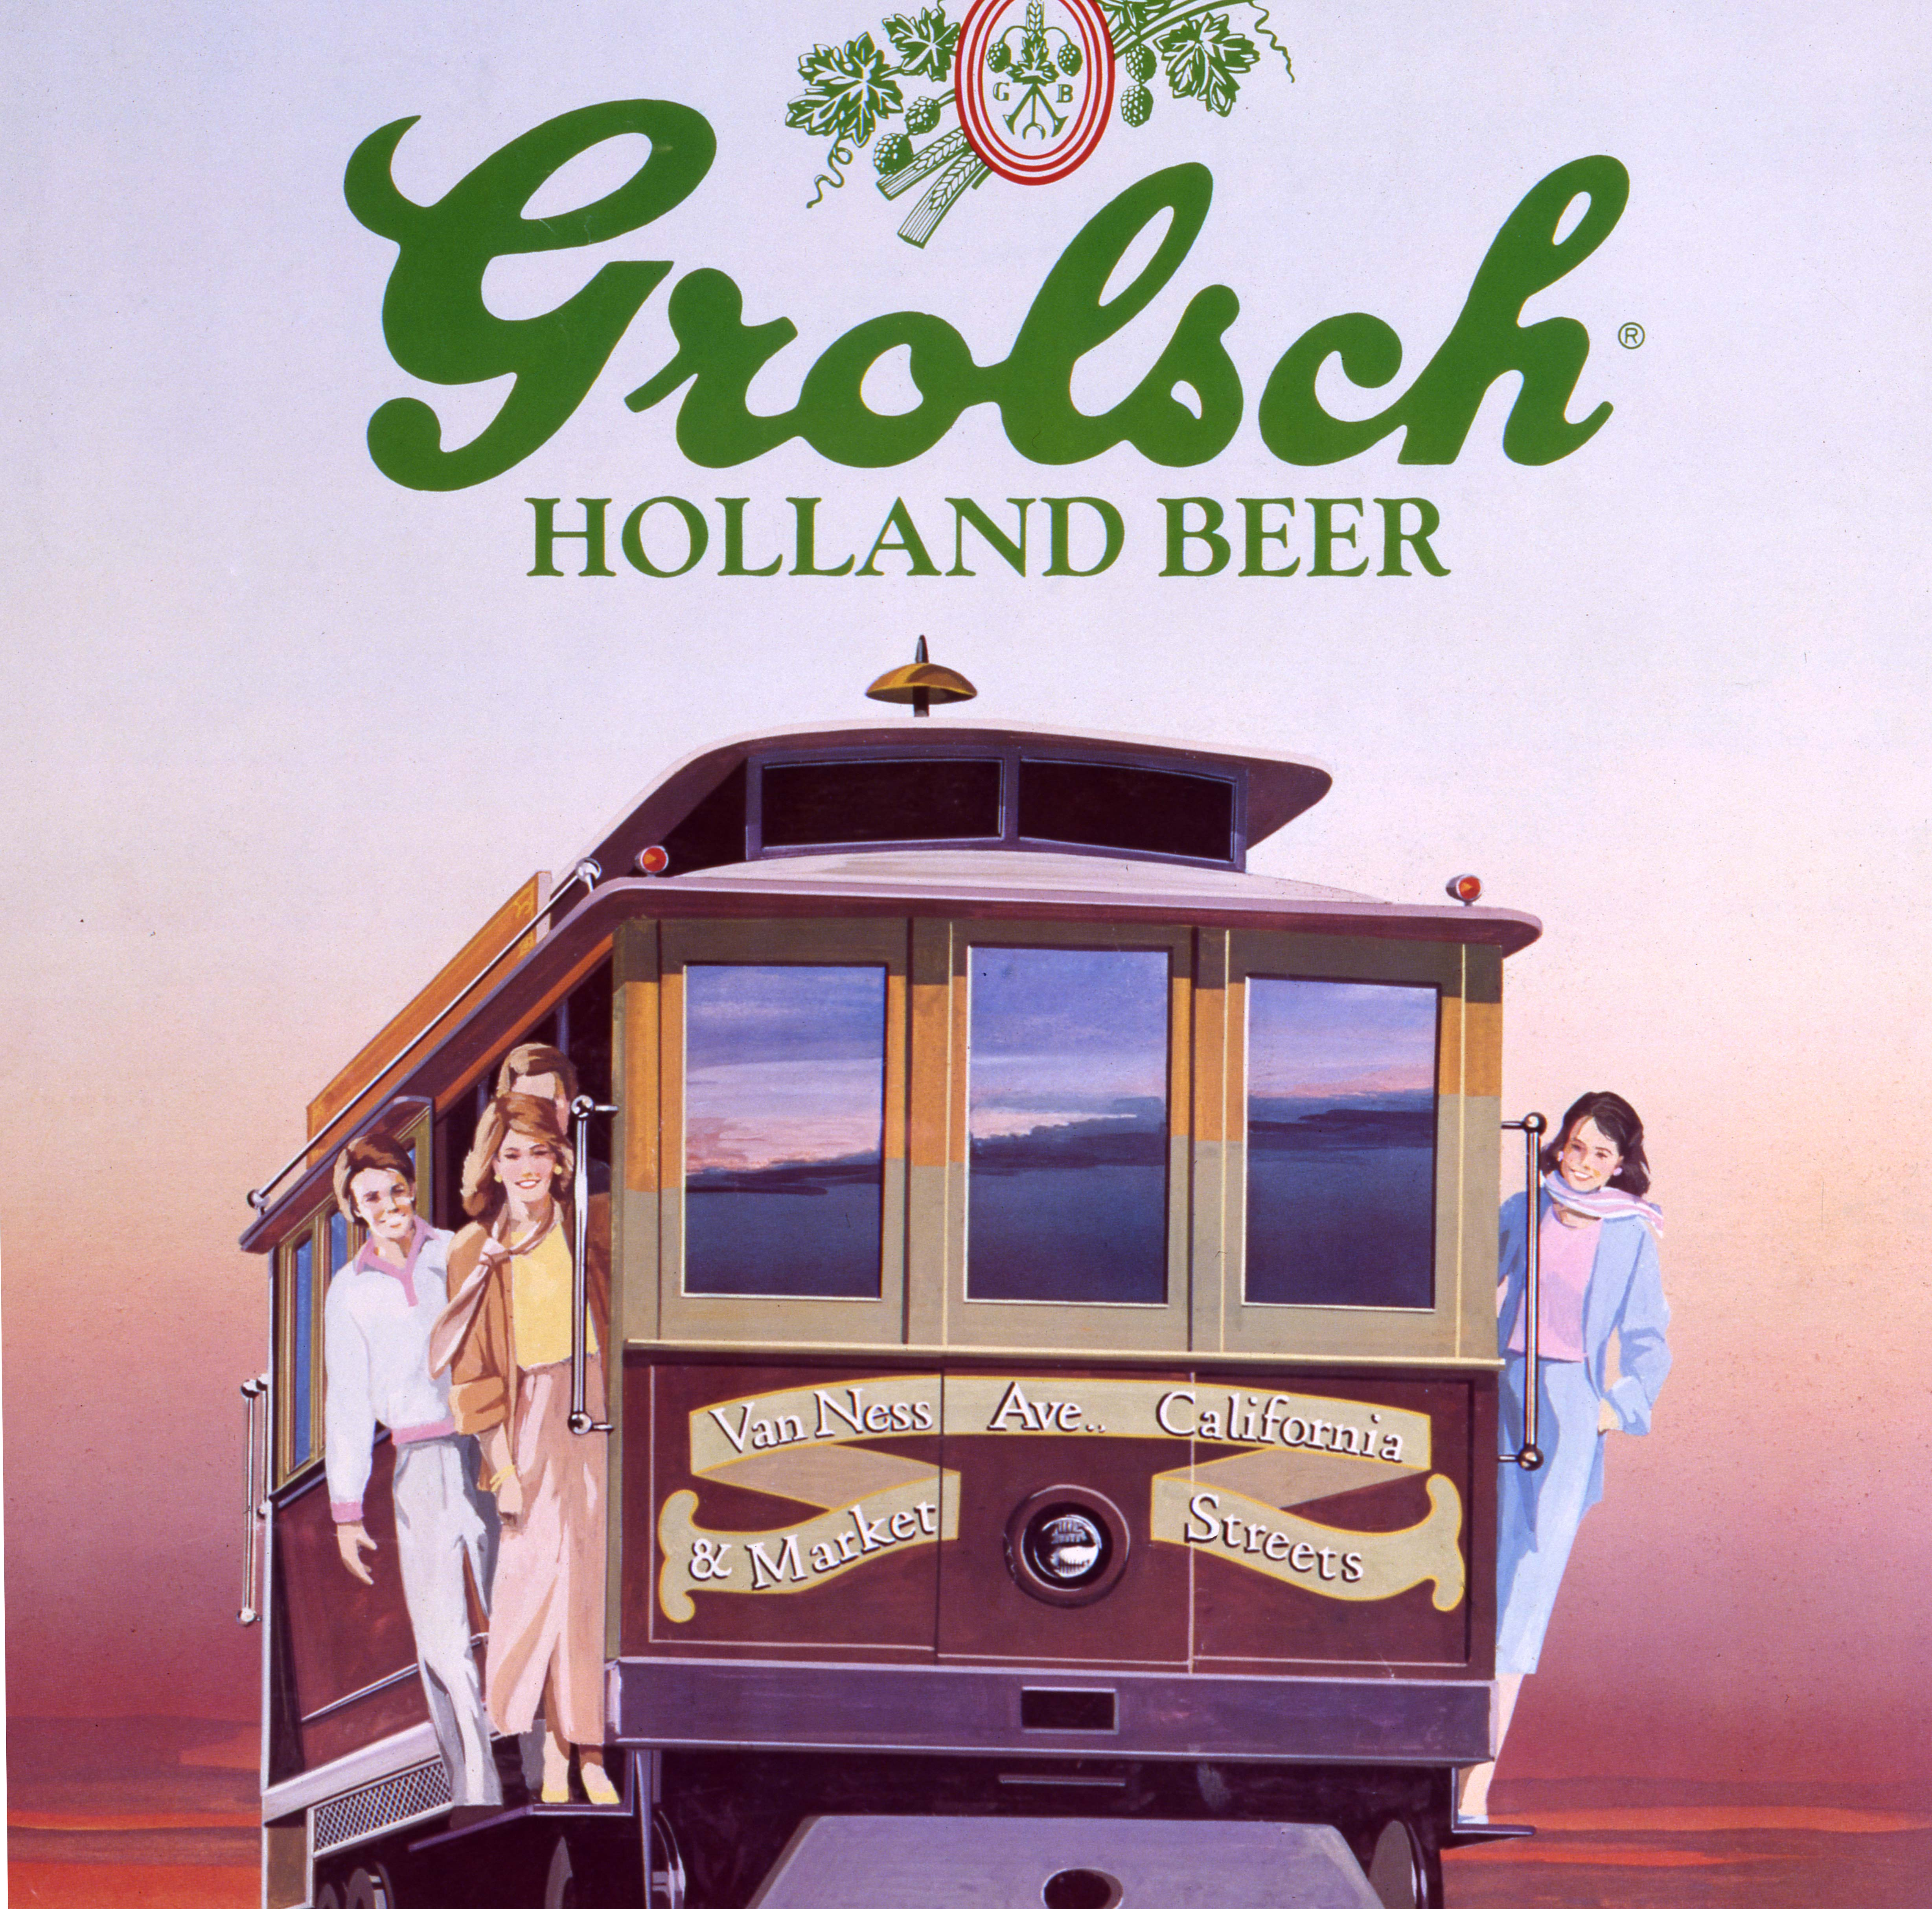 Grolsch goes international